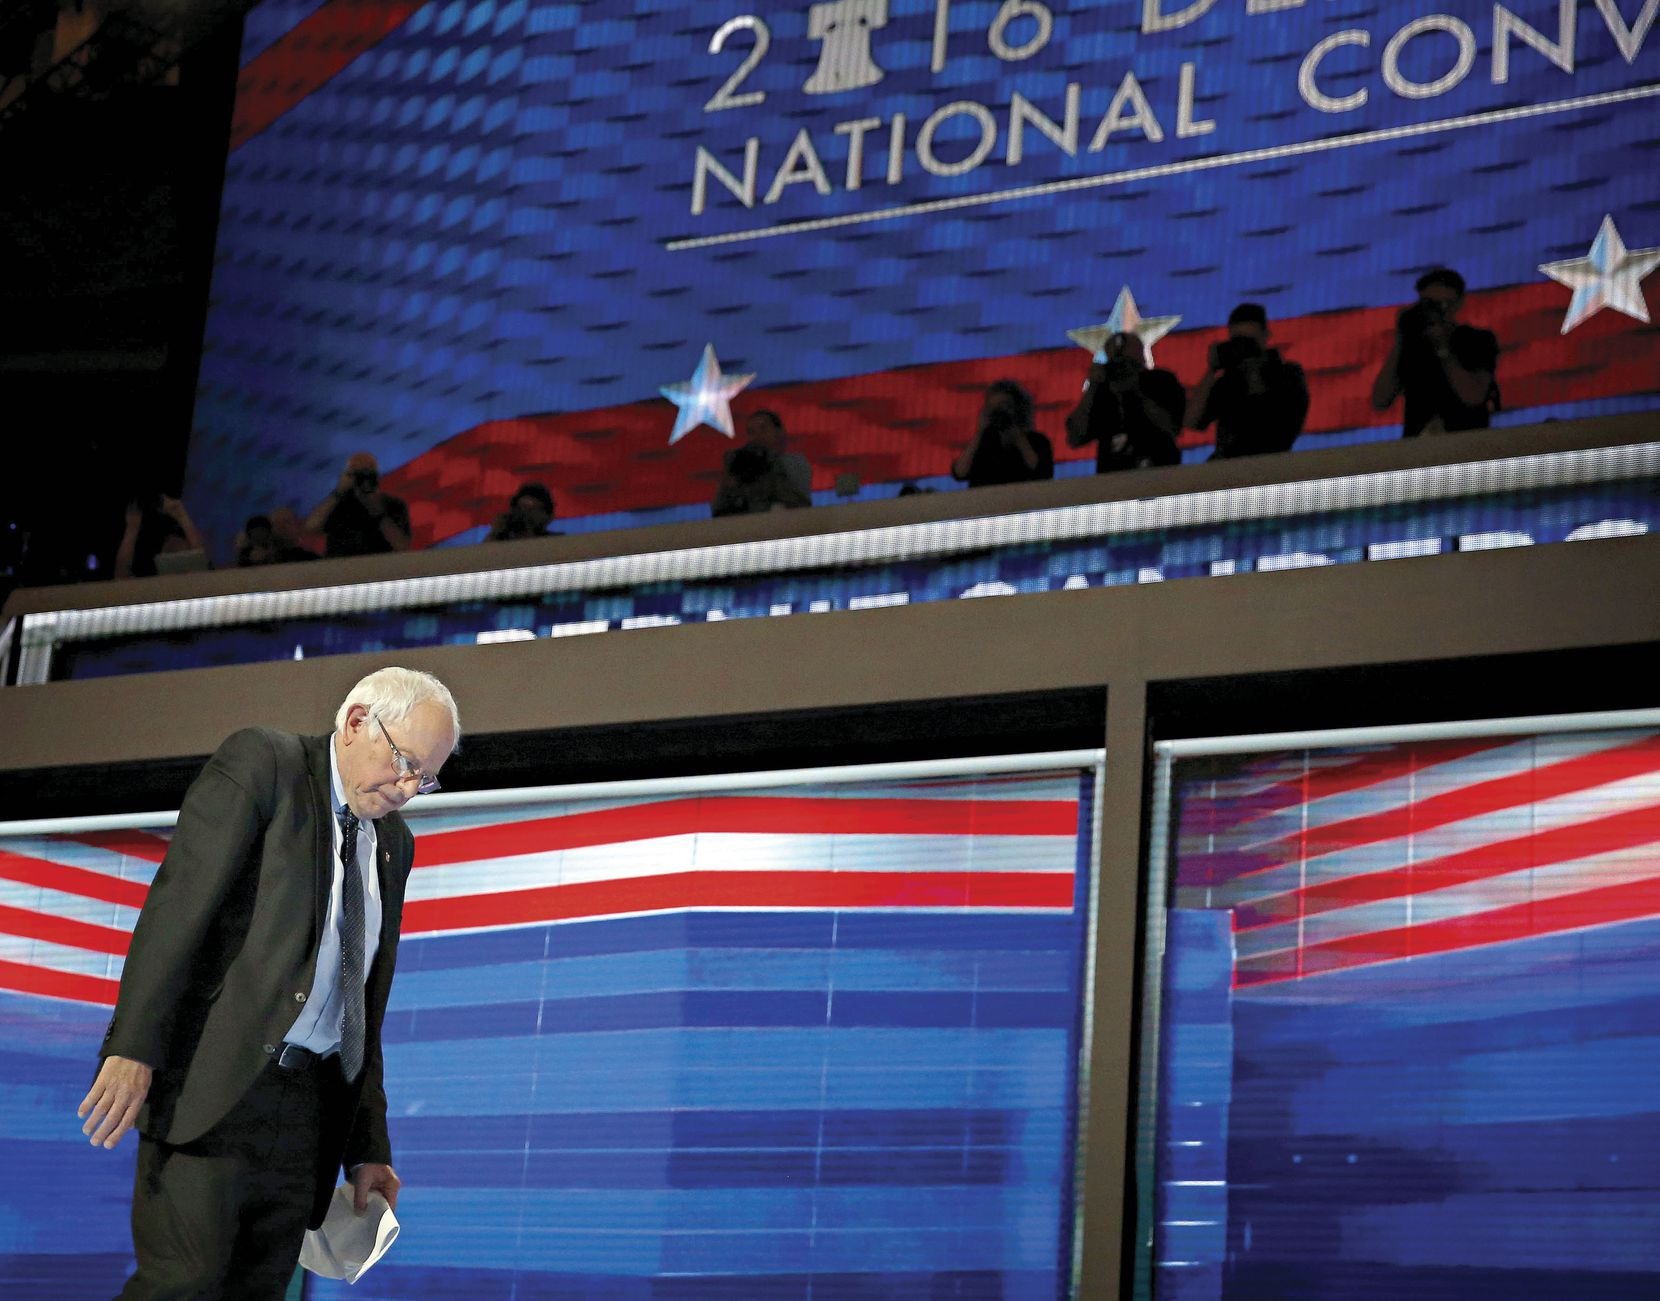 Bernie Sanders walks off the stage following his speech at the Democratic National Convention in Philadelphia on July 25. After waging a hard-fought primary campaign, Sanders endorsed his rival Hillary Clinton.